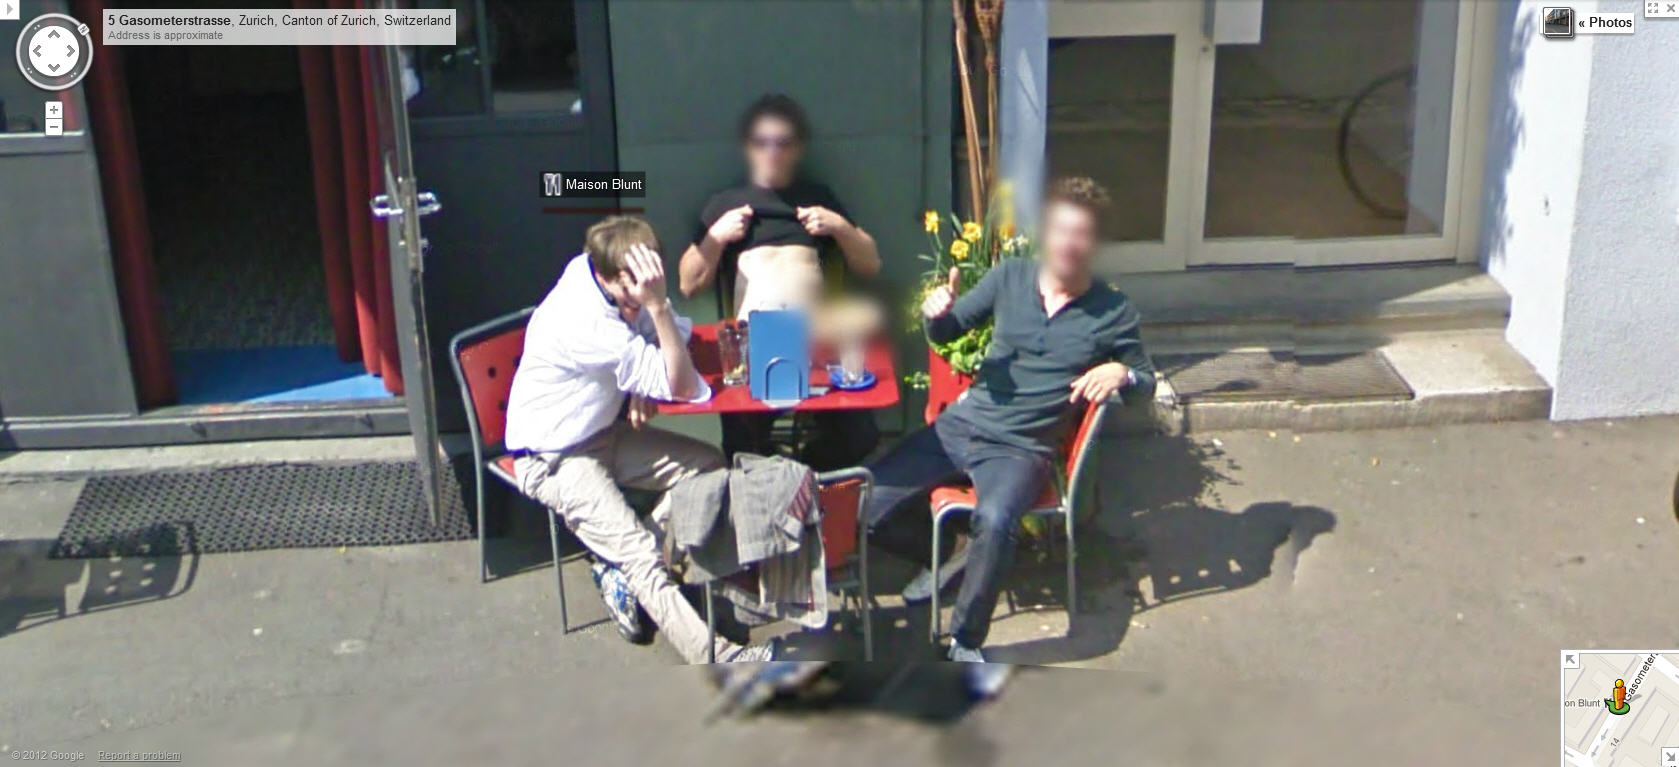 google-maps-switzerland-captures-a-few-guys-posing-for-streetview